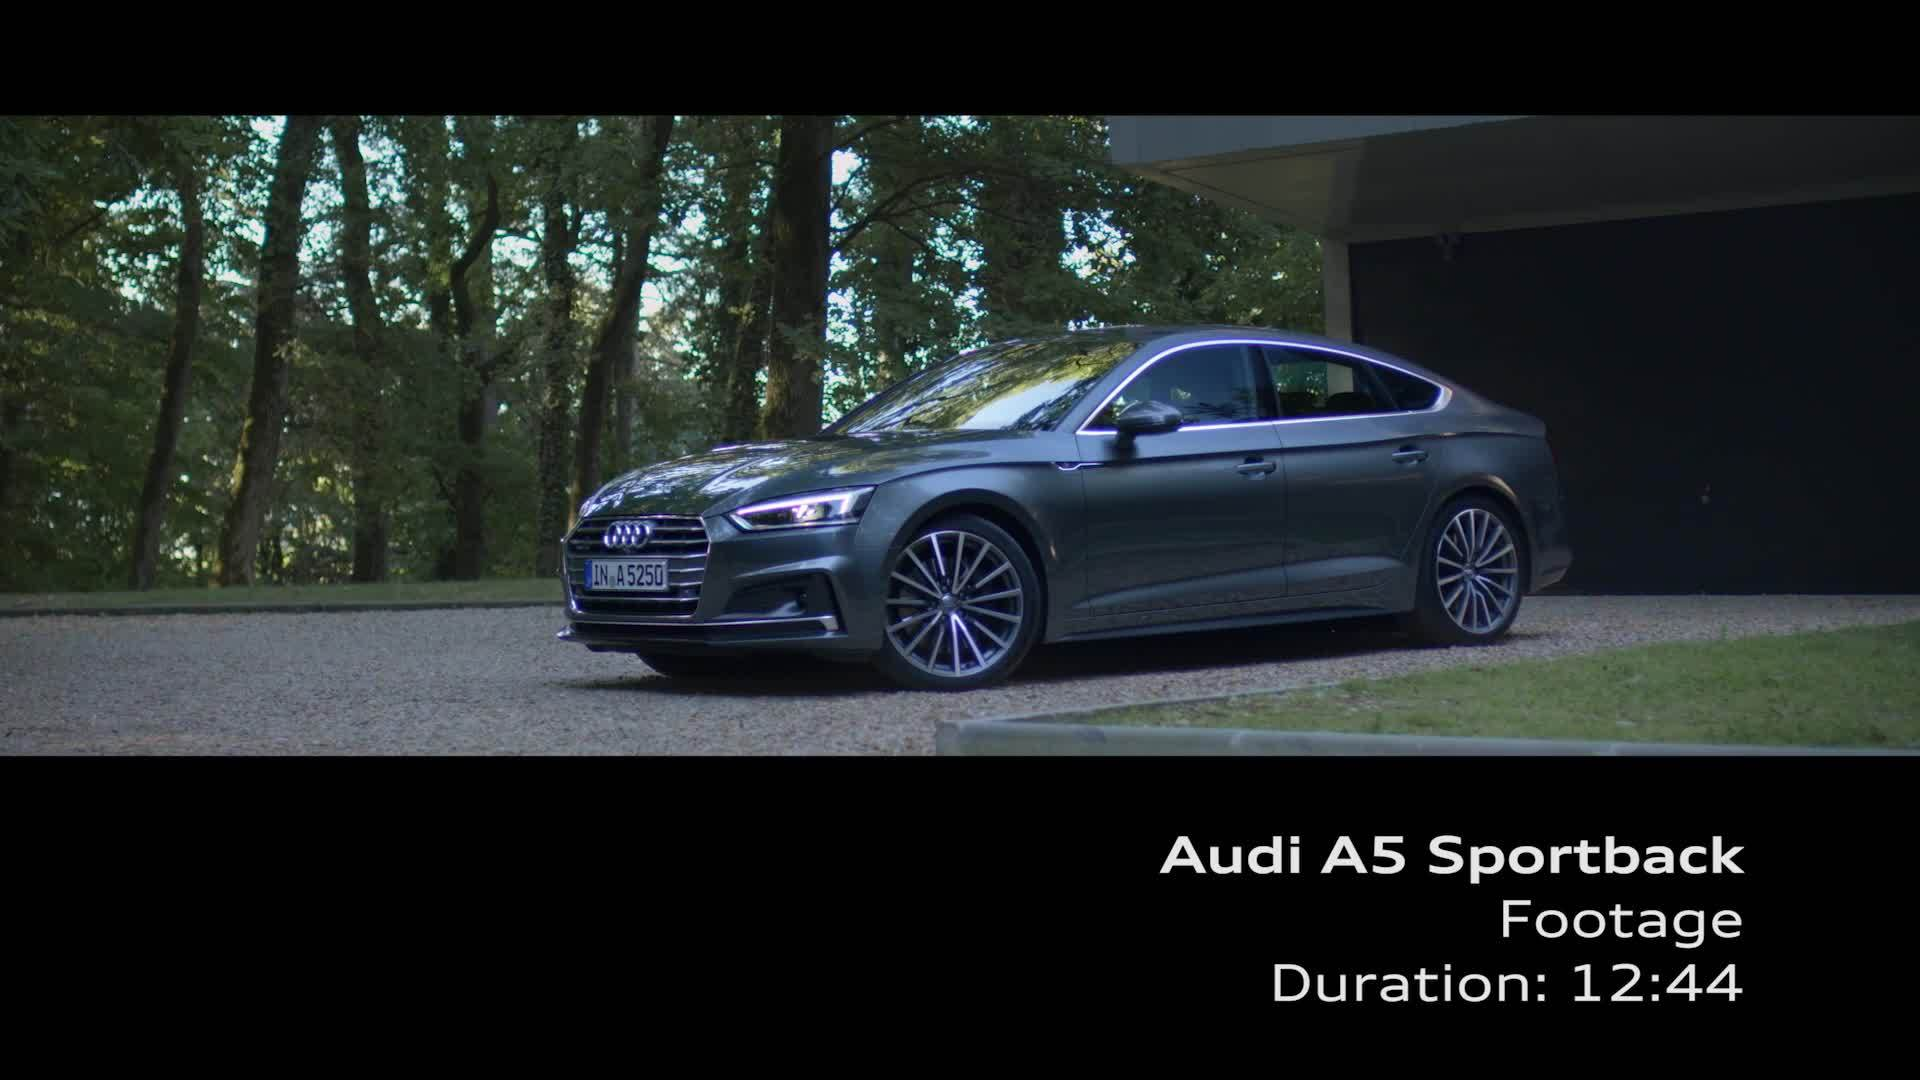 hight resolution of audi a5 sportback footage